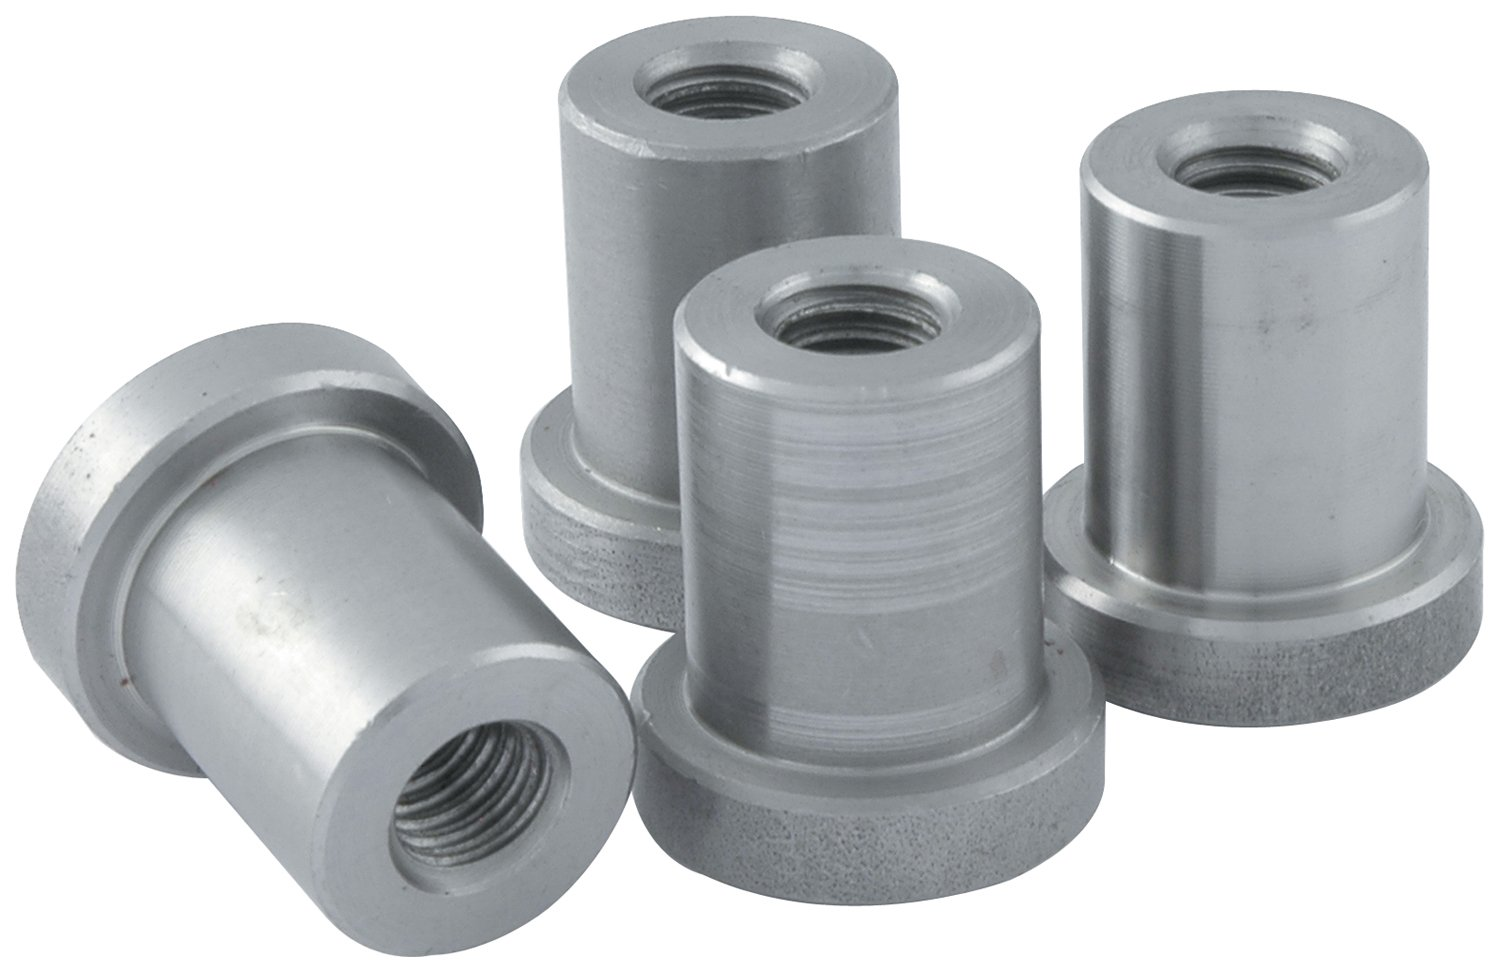 Allstar Performance ALL18552 1/2'-13 Weld-On Nut - Pack of 4 LAO8Q